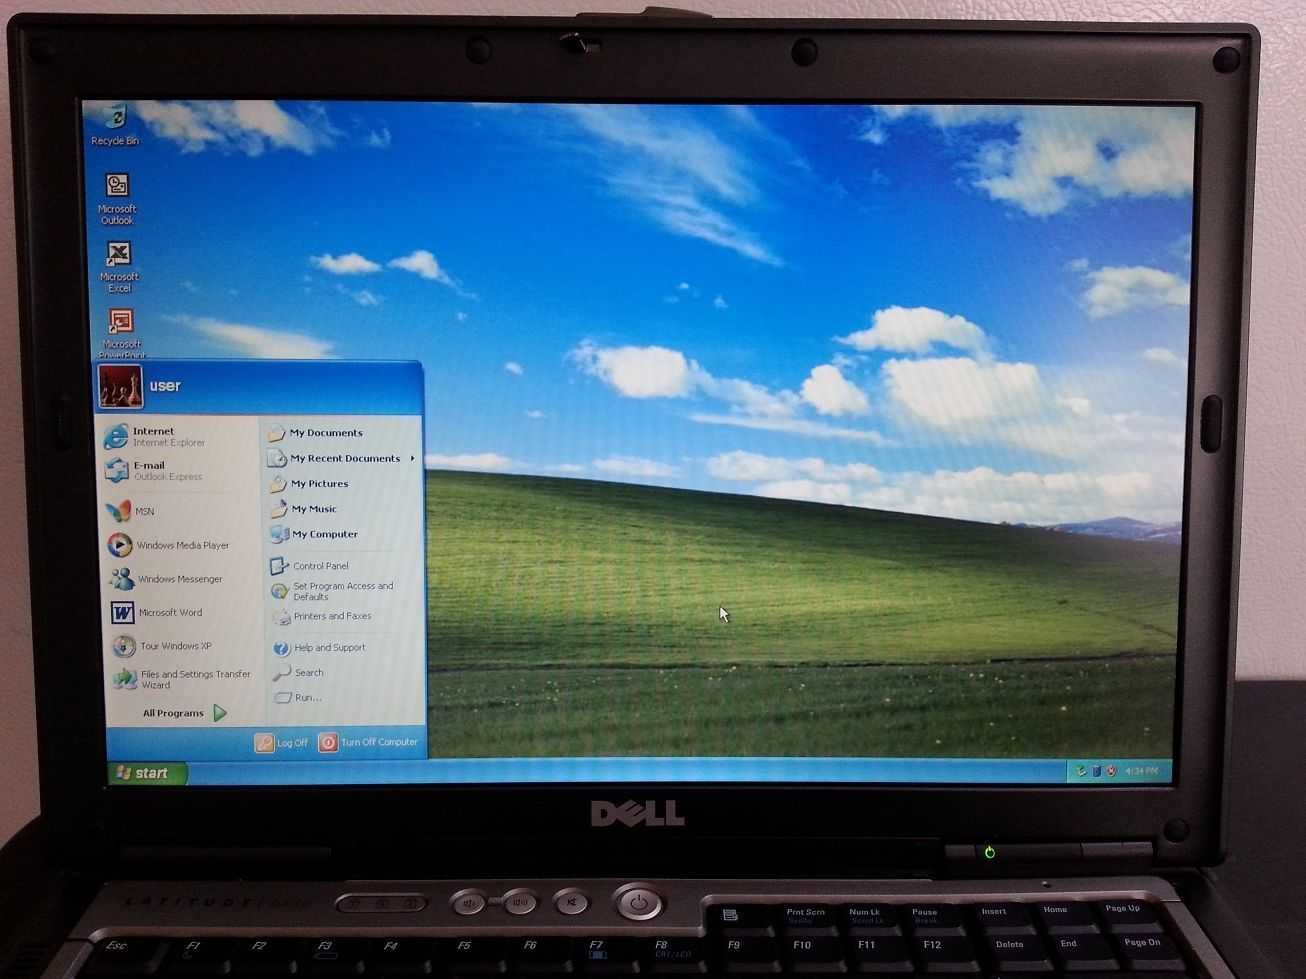 Dell Latitude D630 Core 2 Duo 2Ghz 2GB 80GB DVD Windows XP Pro Serial Port FAST